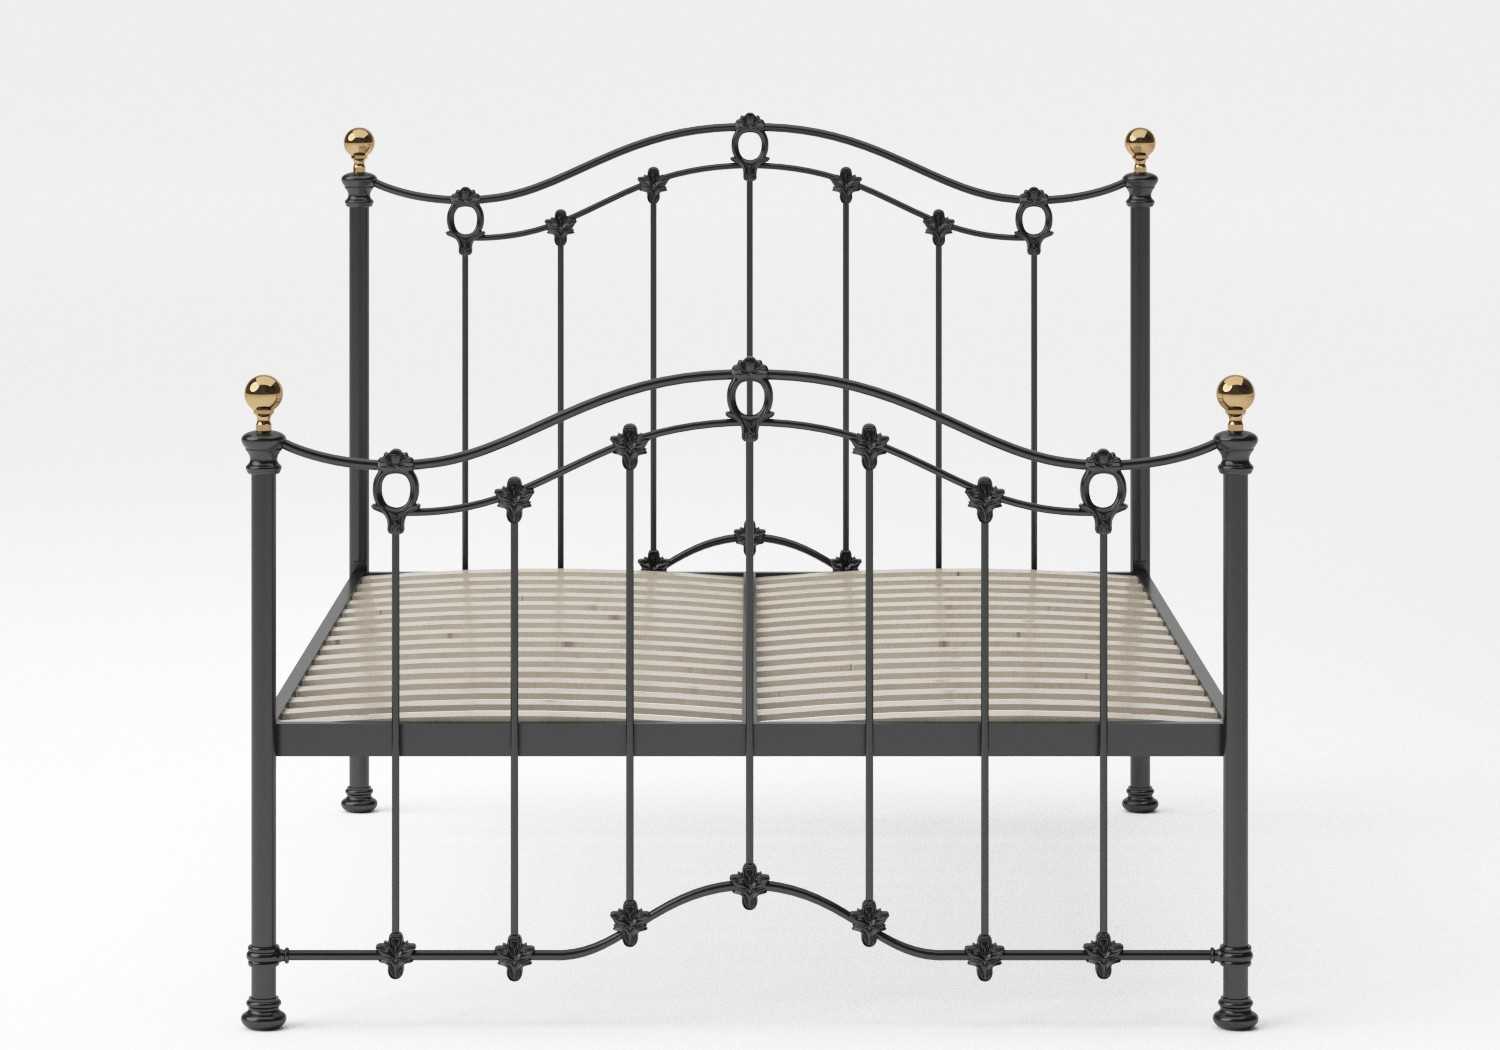 Clarina Iron/Metal Bed in Satin Black with brass details shown with slatted frame